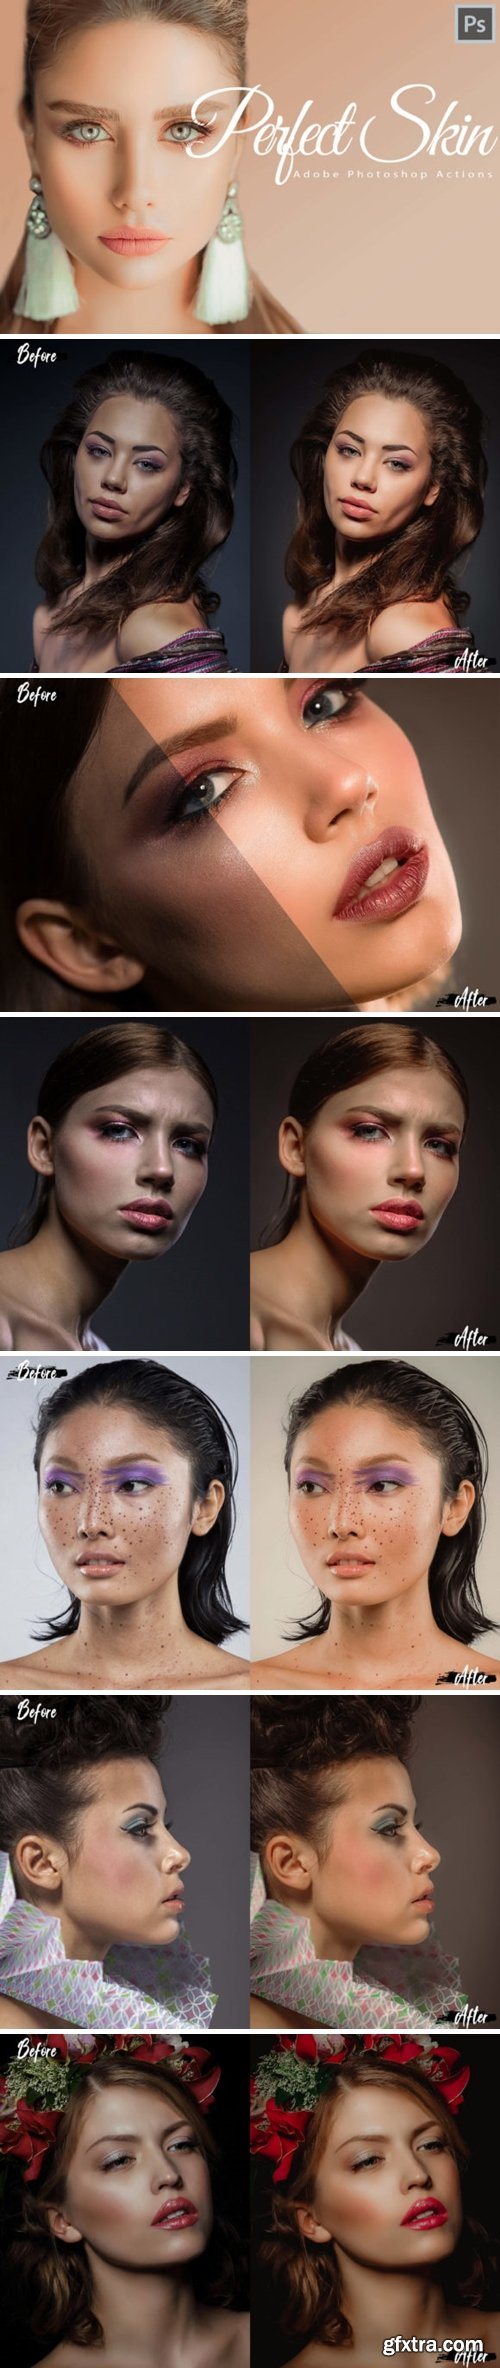 18 Perfect Skin Photoshop Actions 1671985